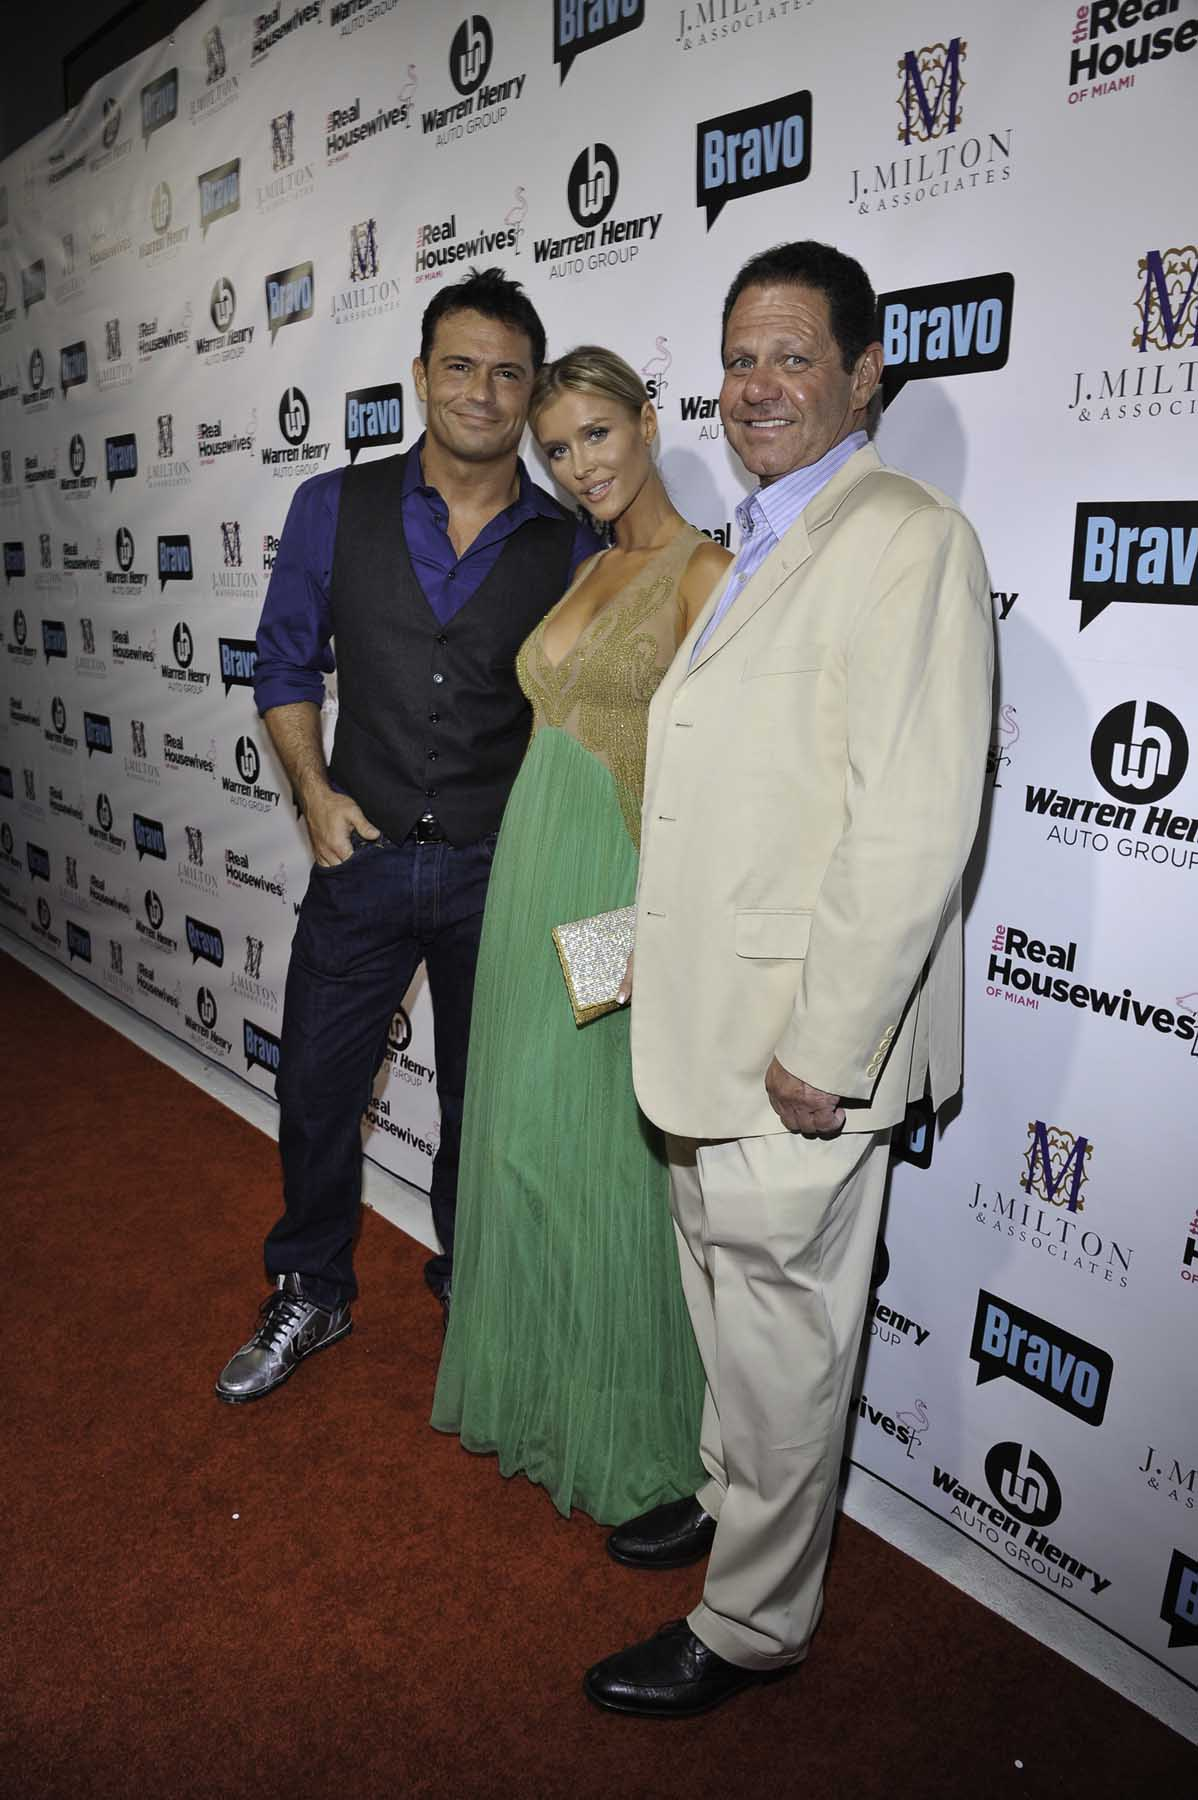 The Real Housewives Of Miami Celebrate Season 3 Haute Living